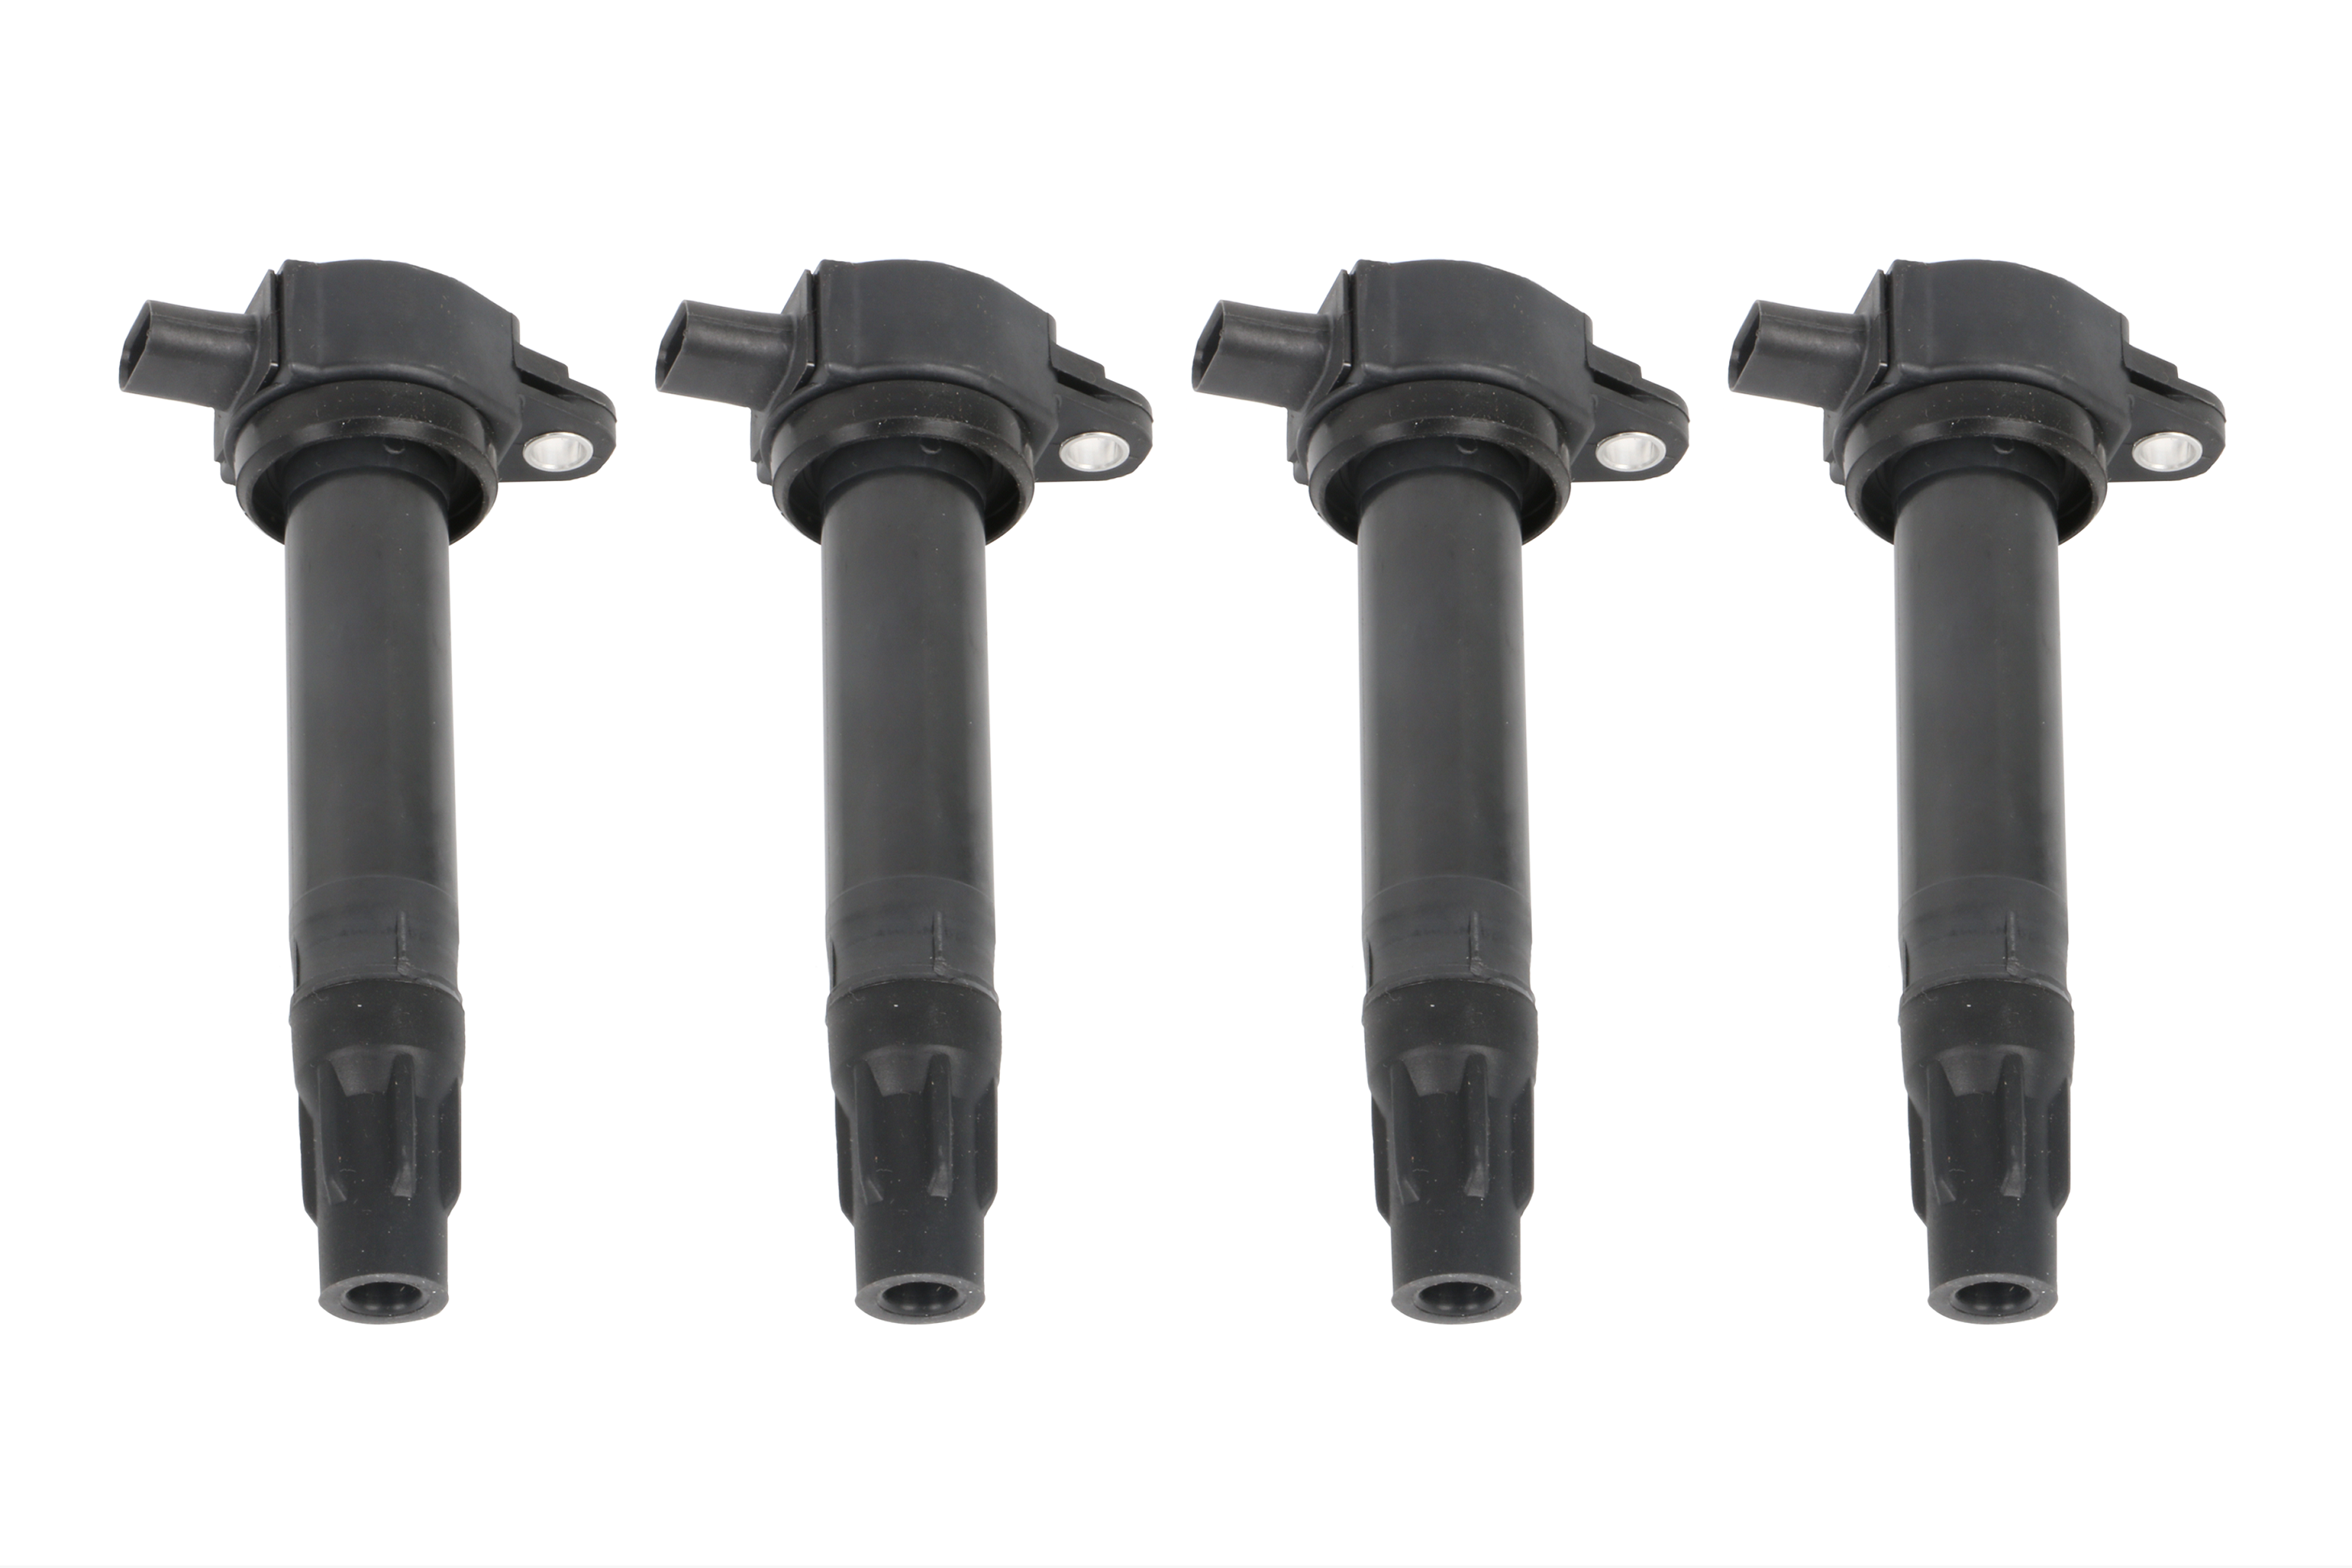 Ignition Coil Pack Set of 4 - Replaces# 4606824AB - Fits Chrysler 200, Sebring, Dodge Avenger, Caliber, Journey, Jeep Compass, Patriot Including Year 2007-2017 Image